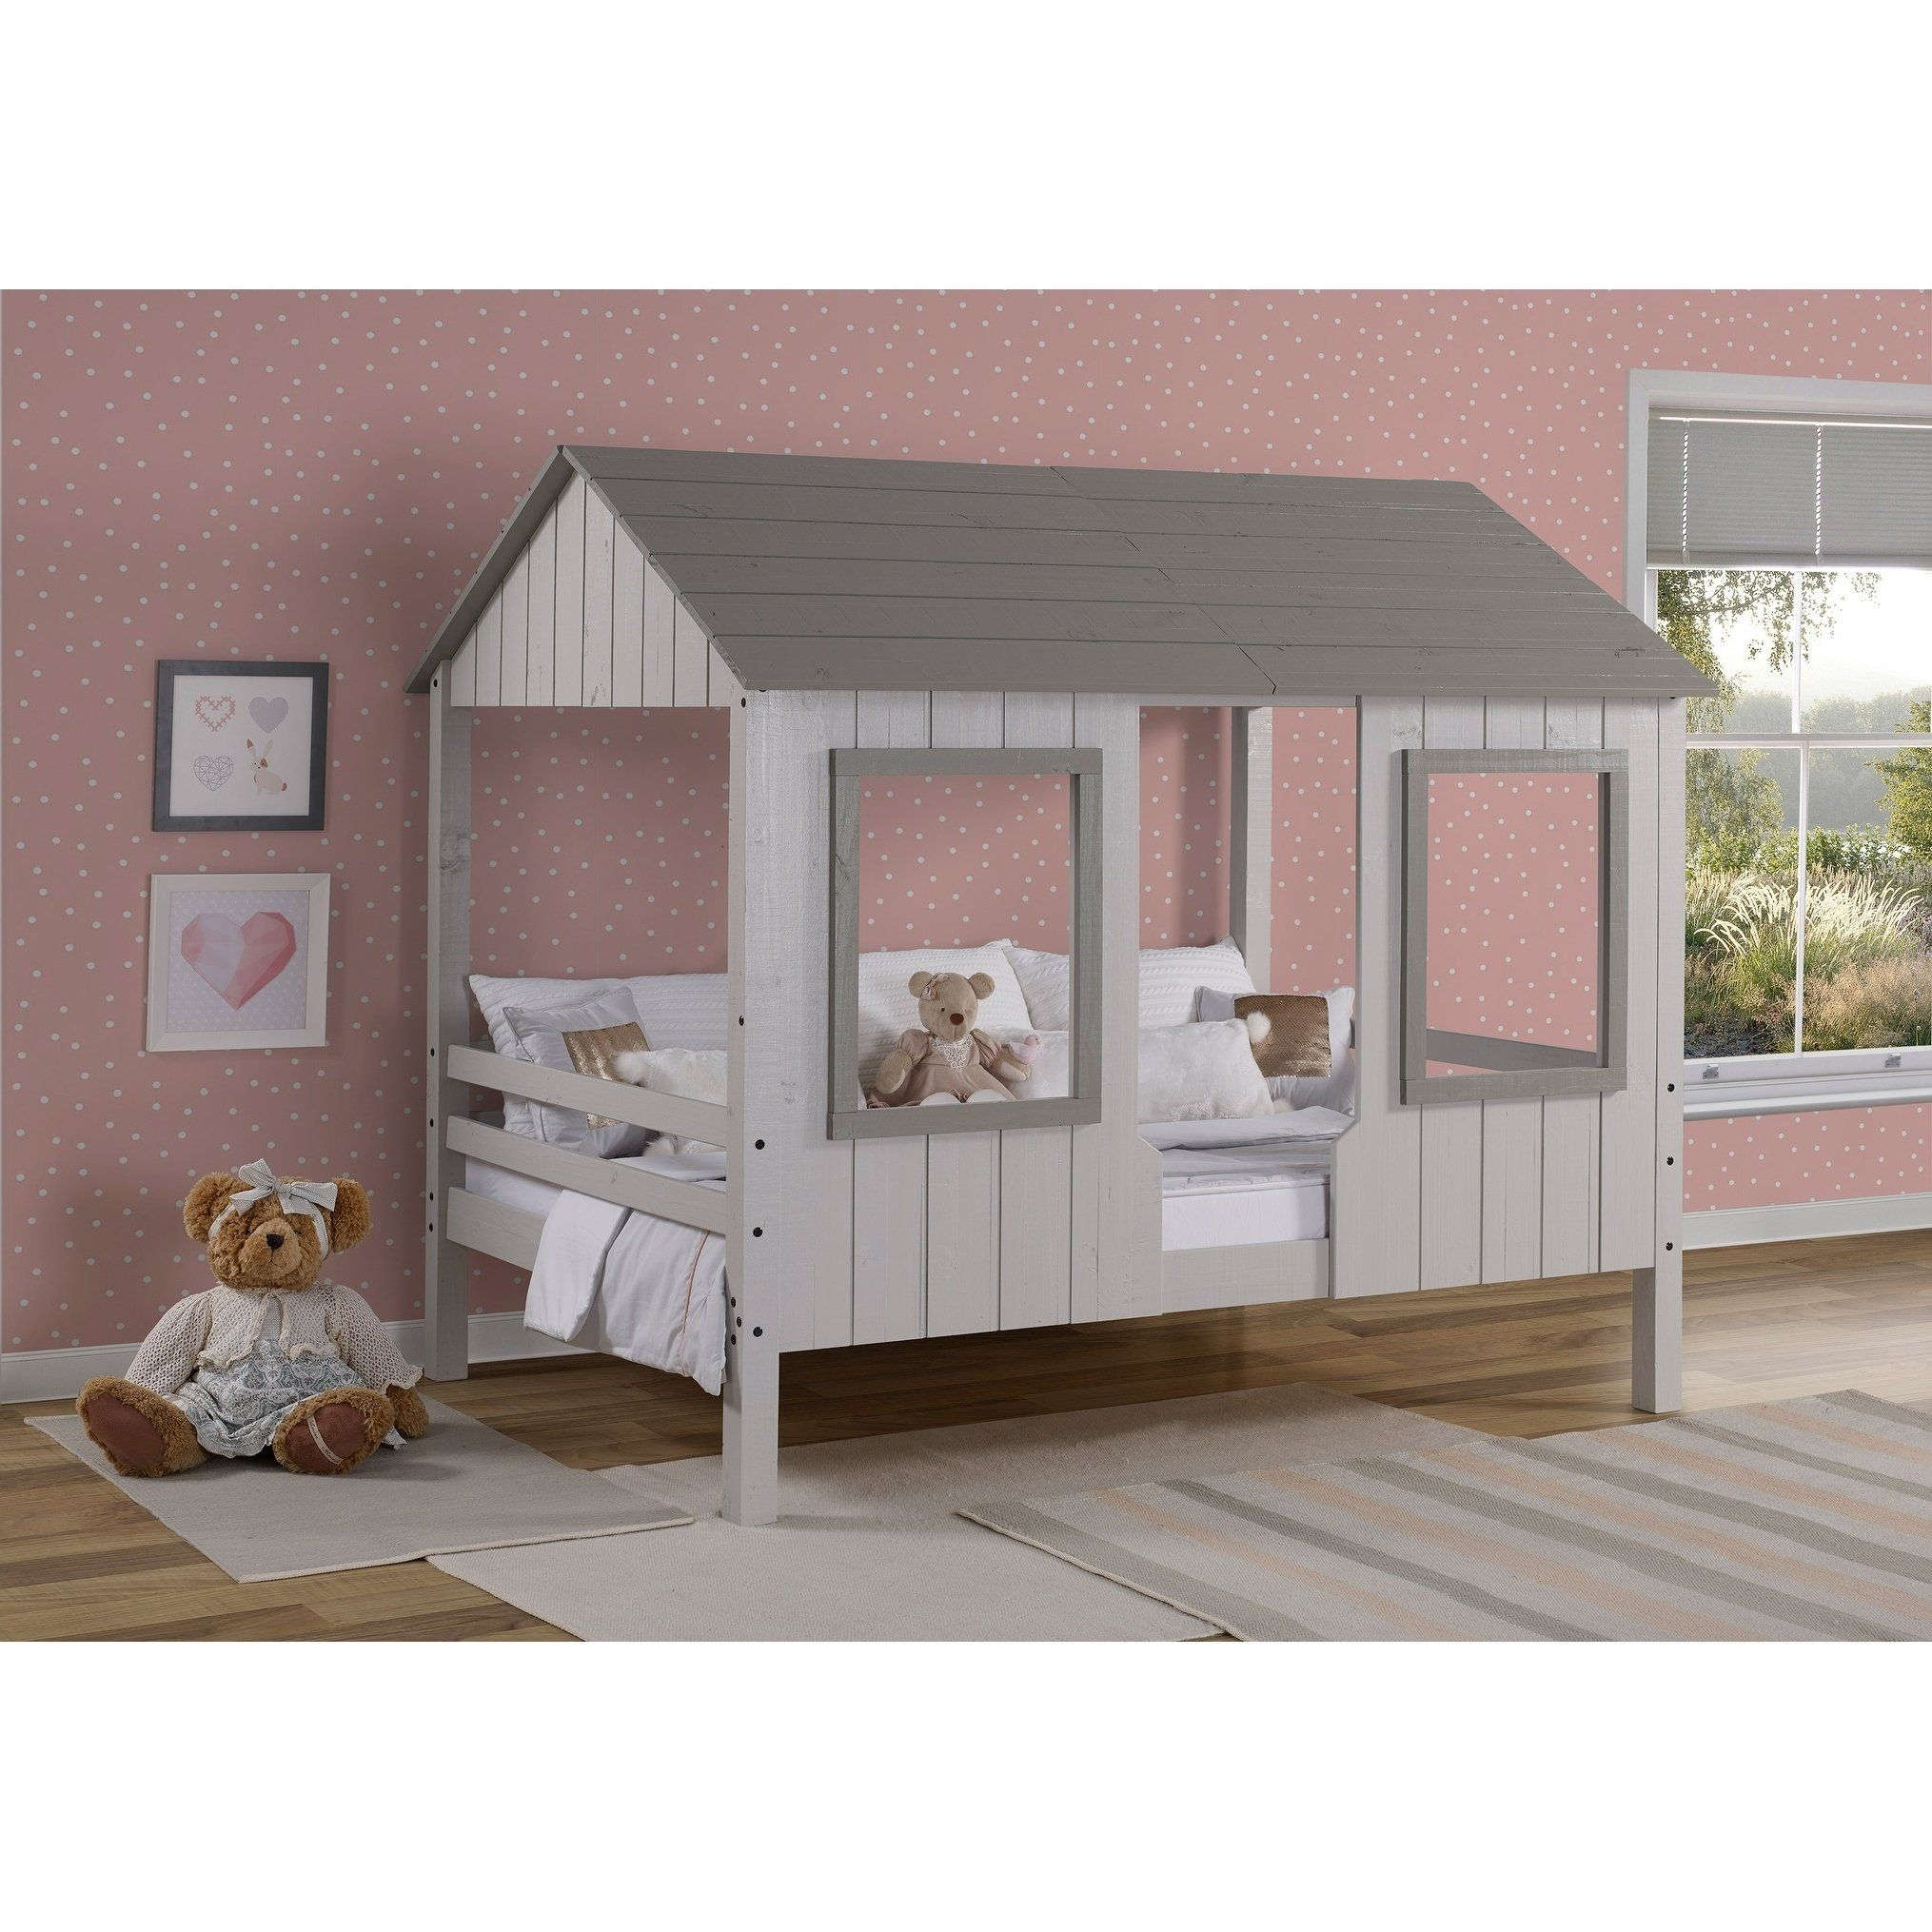 Full House Low Loft in Grey Two Tone (Full), Gray, Donco